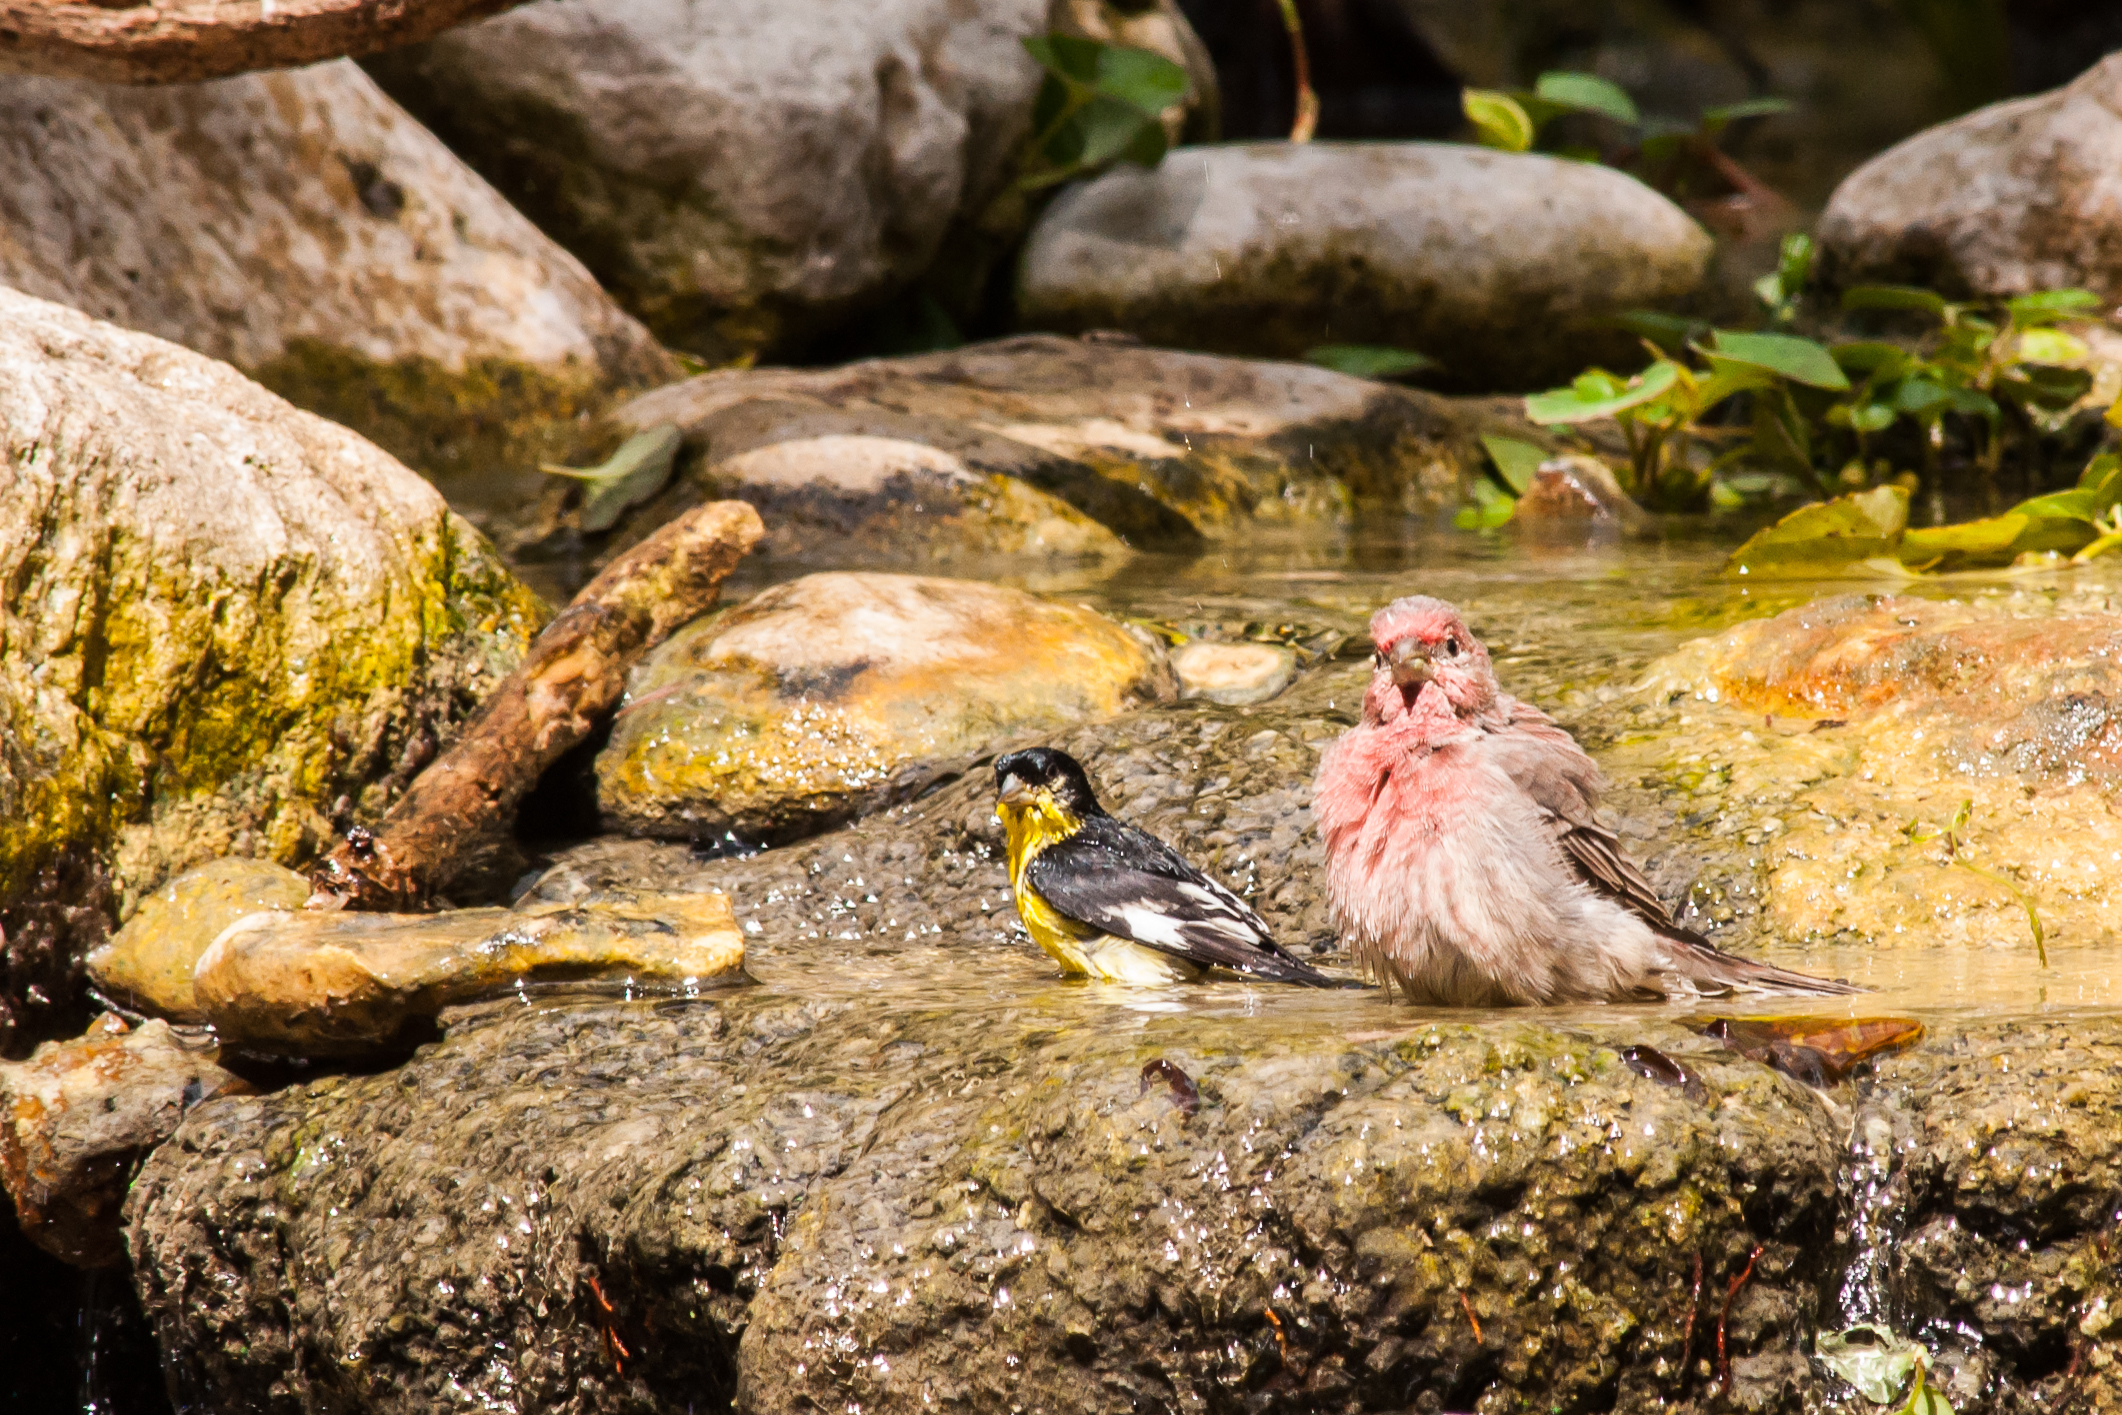 Species: House Finch and Lesser Goldfinch Photo Credit: Alyssia Church Date: August 2016 Location: Warbler Woods Bird Sanctuary